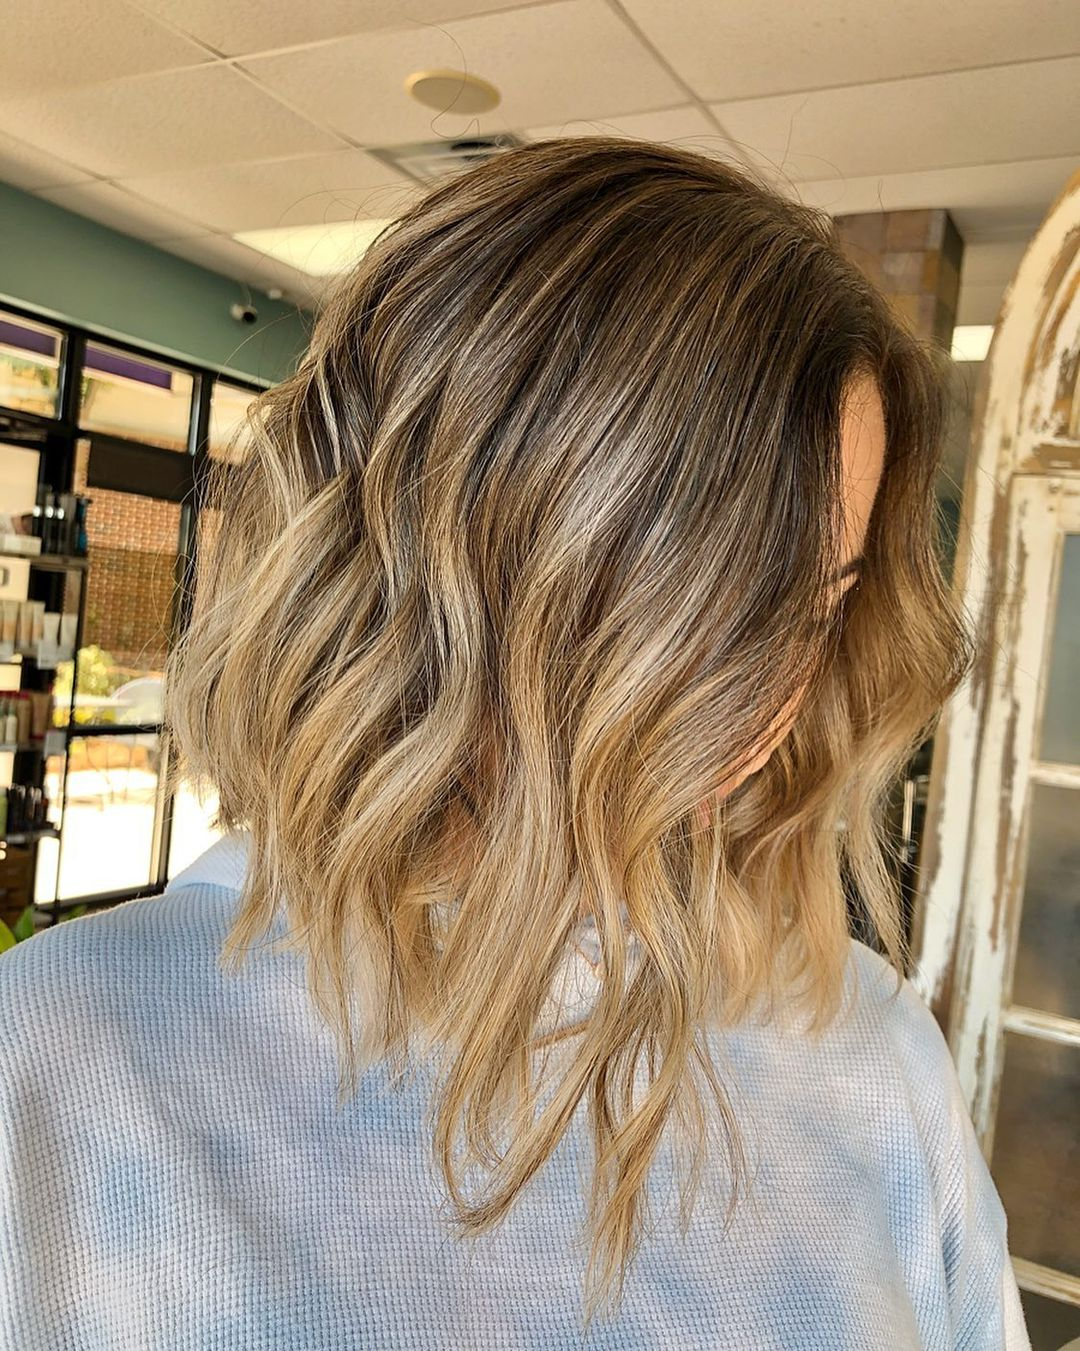 30 Stunning Light Brown Hair with Blonde Highlights to Try